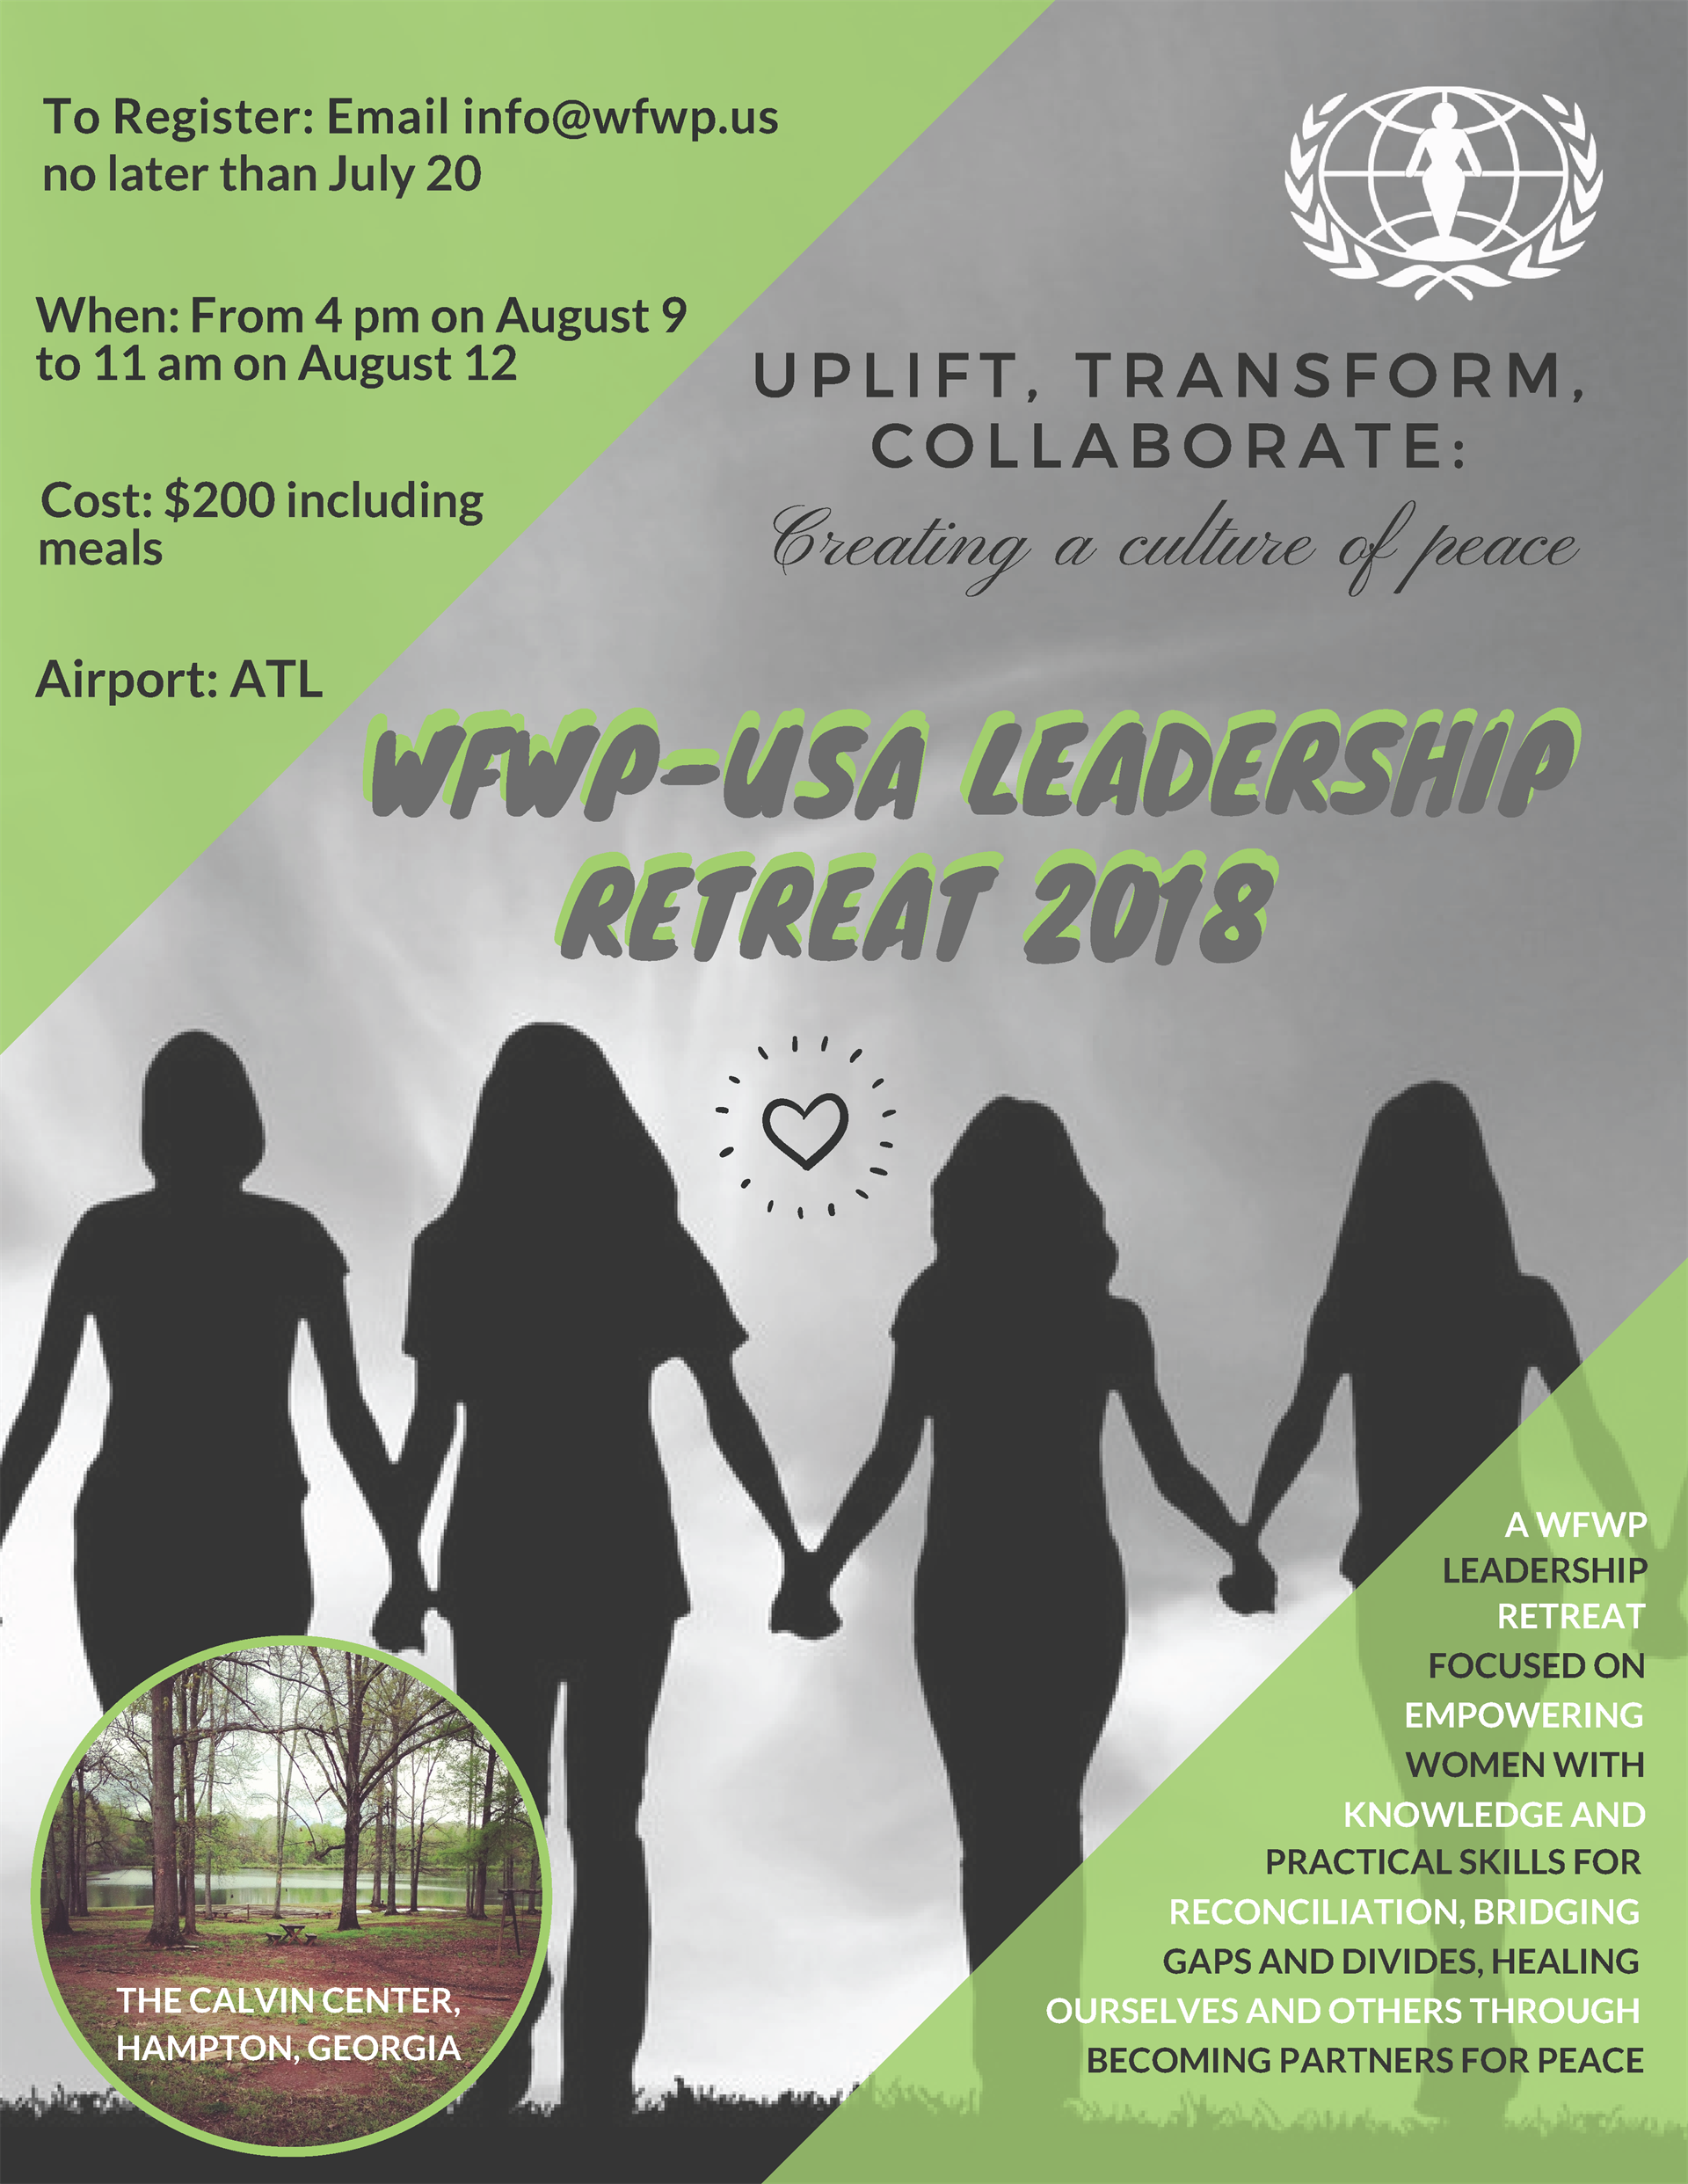 WFWP USA Leadership Retreat 2018.png